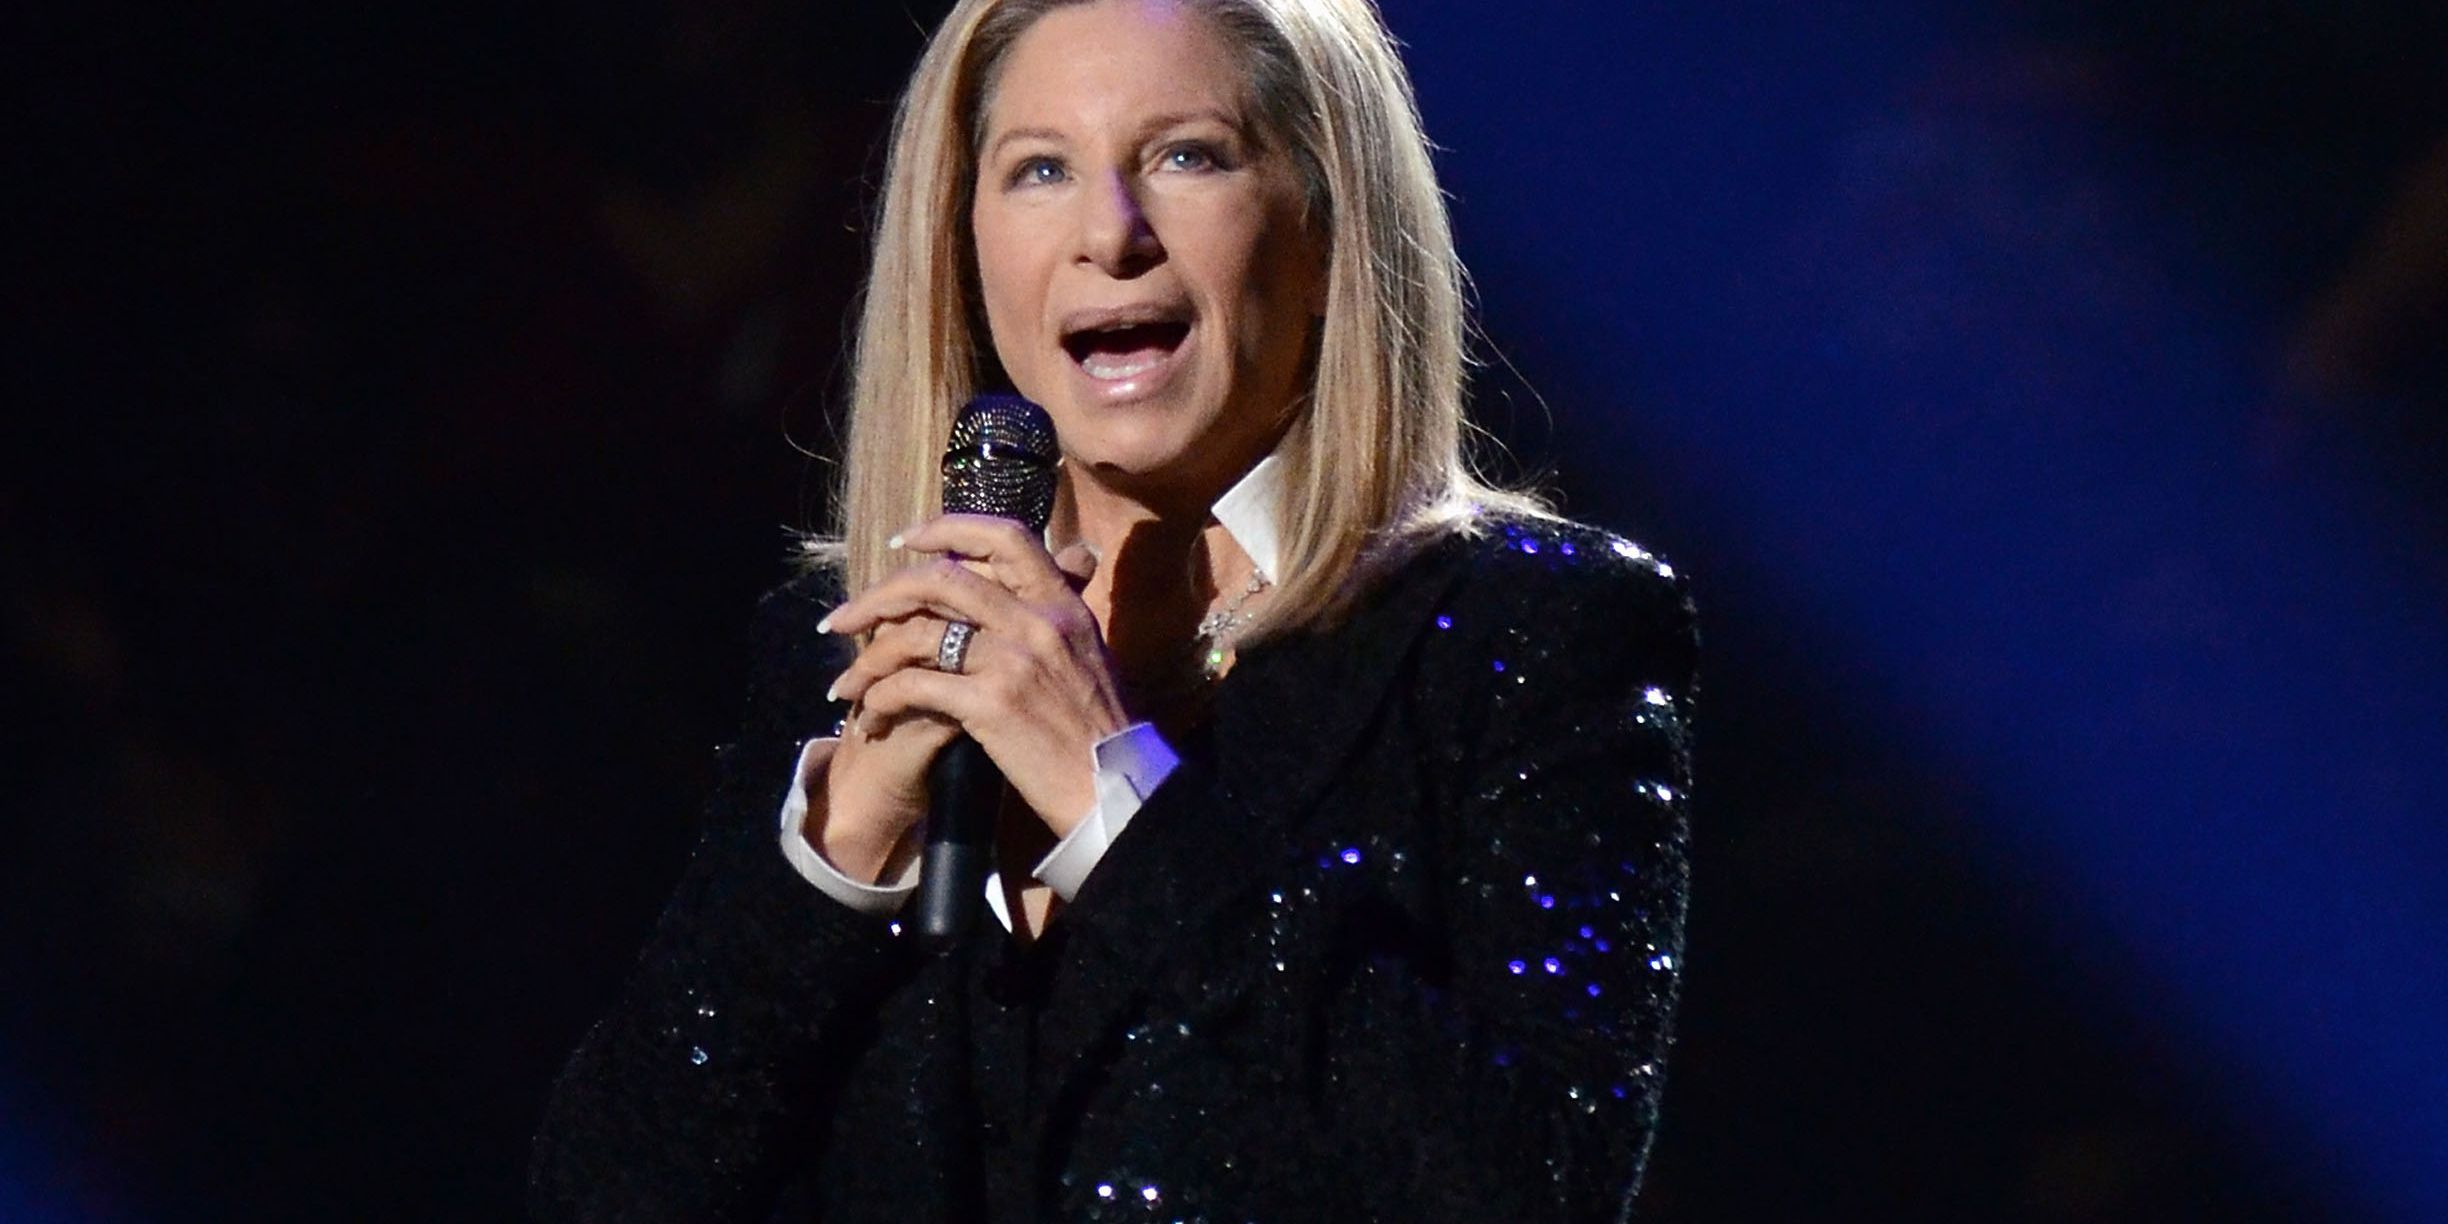 Barbara Streisand faces backlash for saying Michael Jackson's 'sexual needs were his sexual needs'